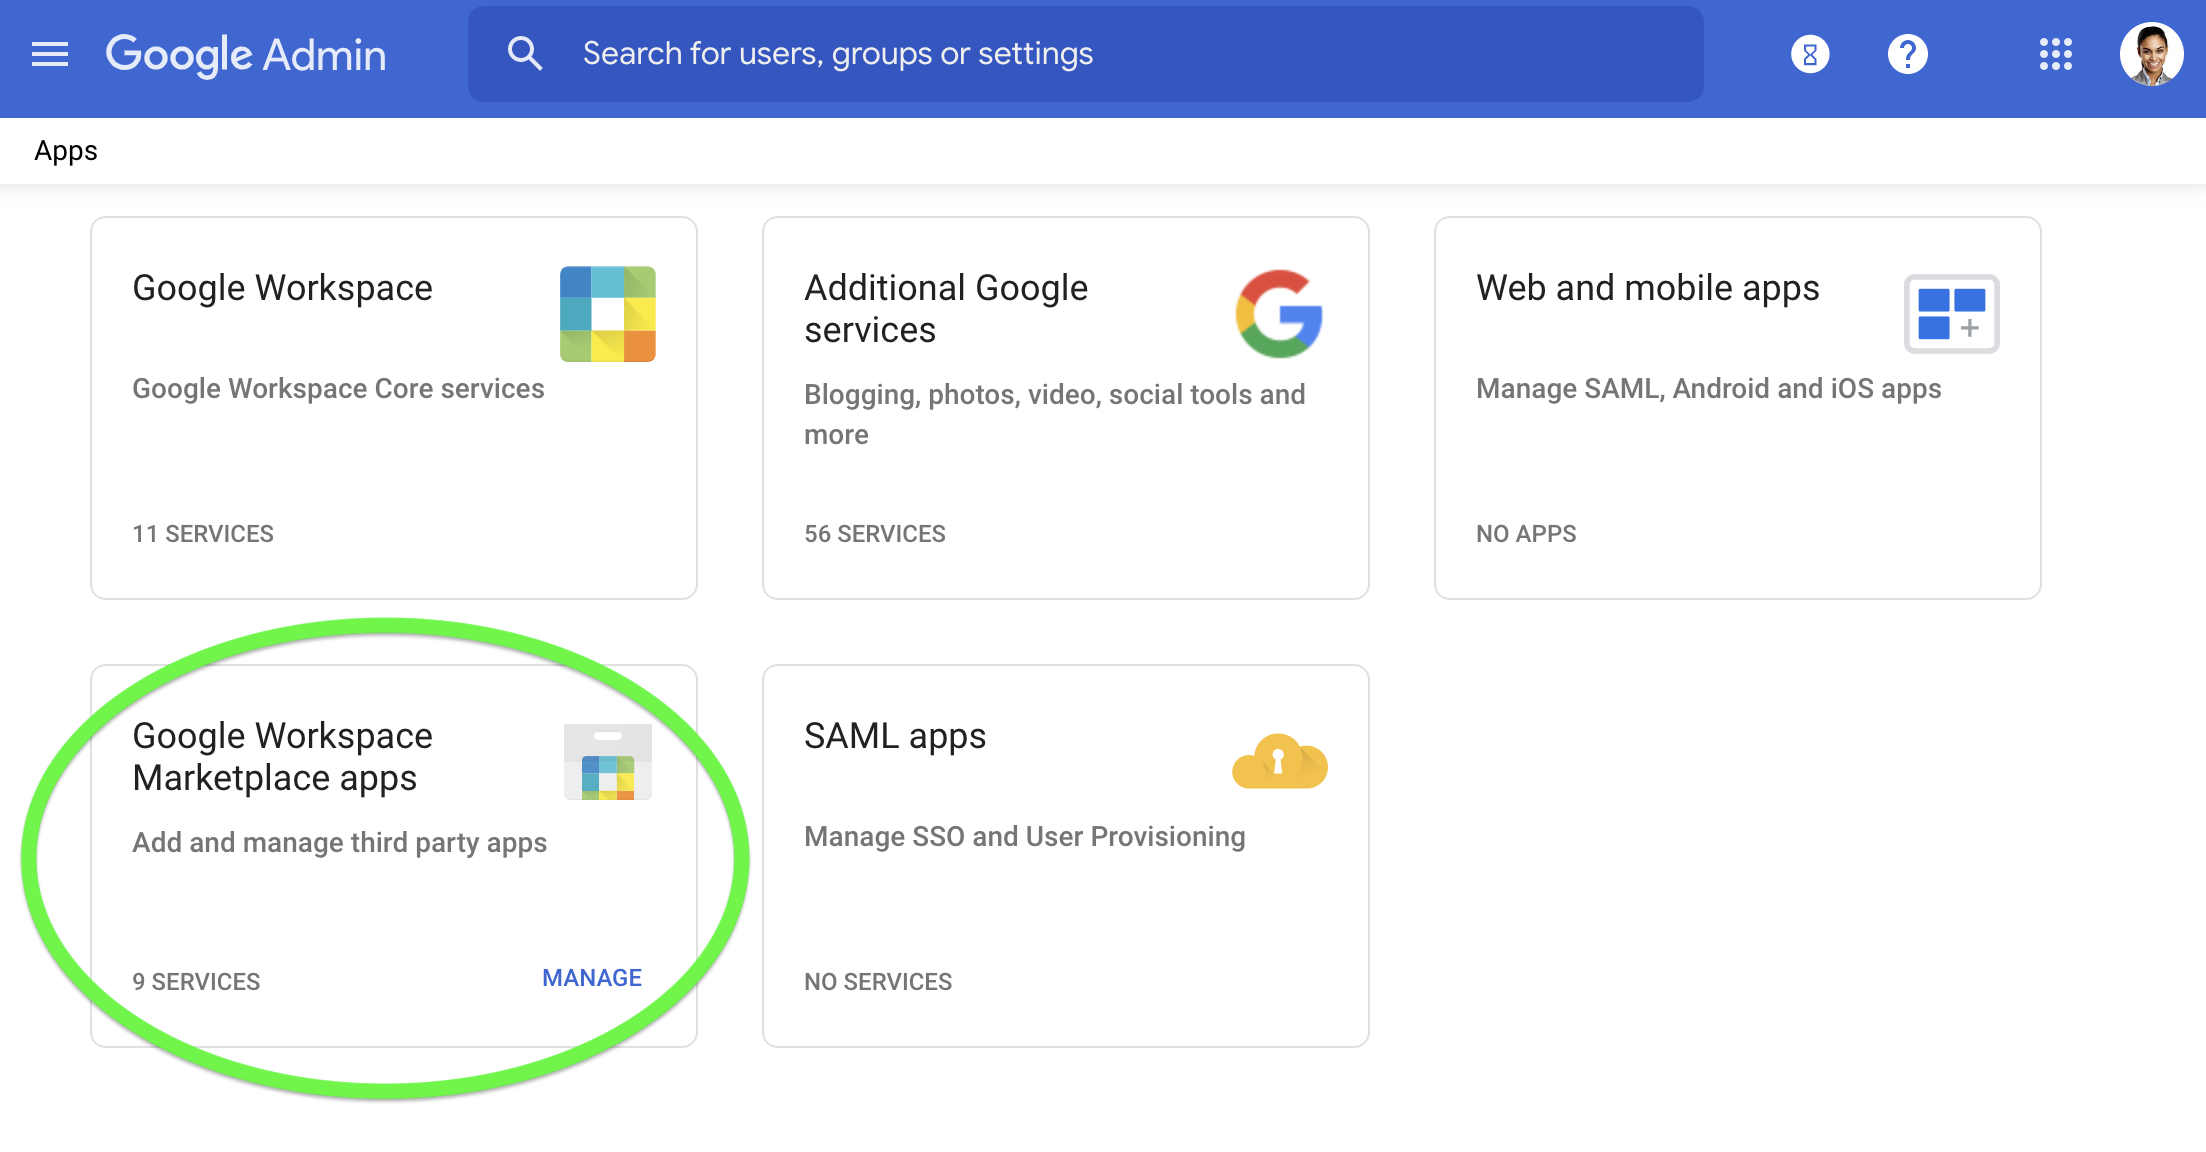 Select Google Workspace Marketplace apps to manage your apps